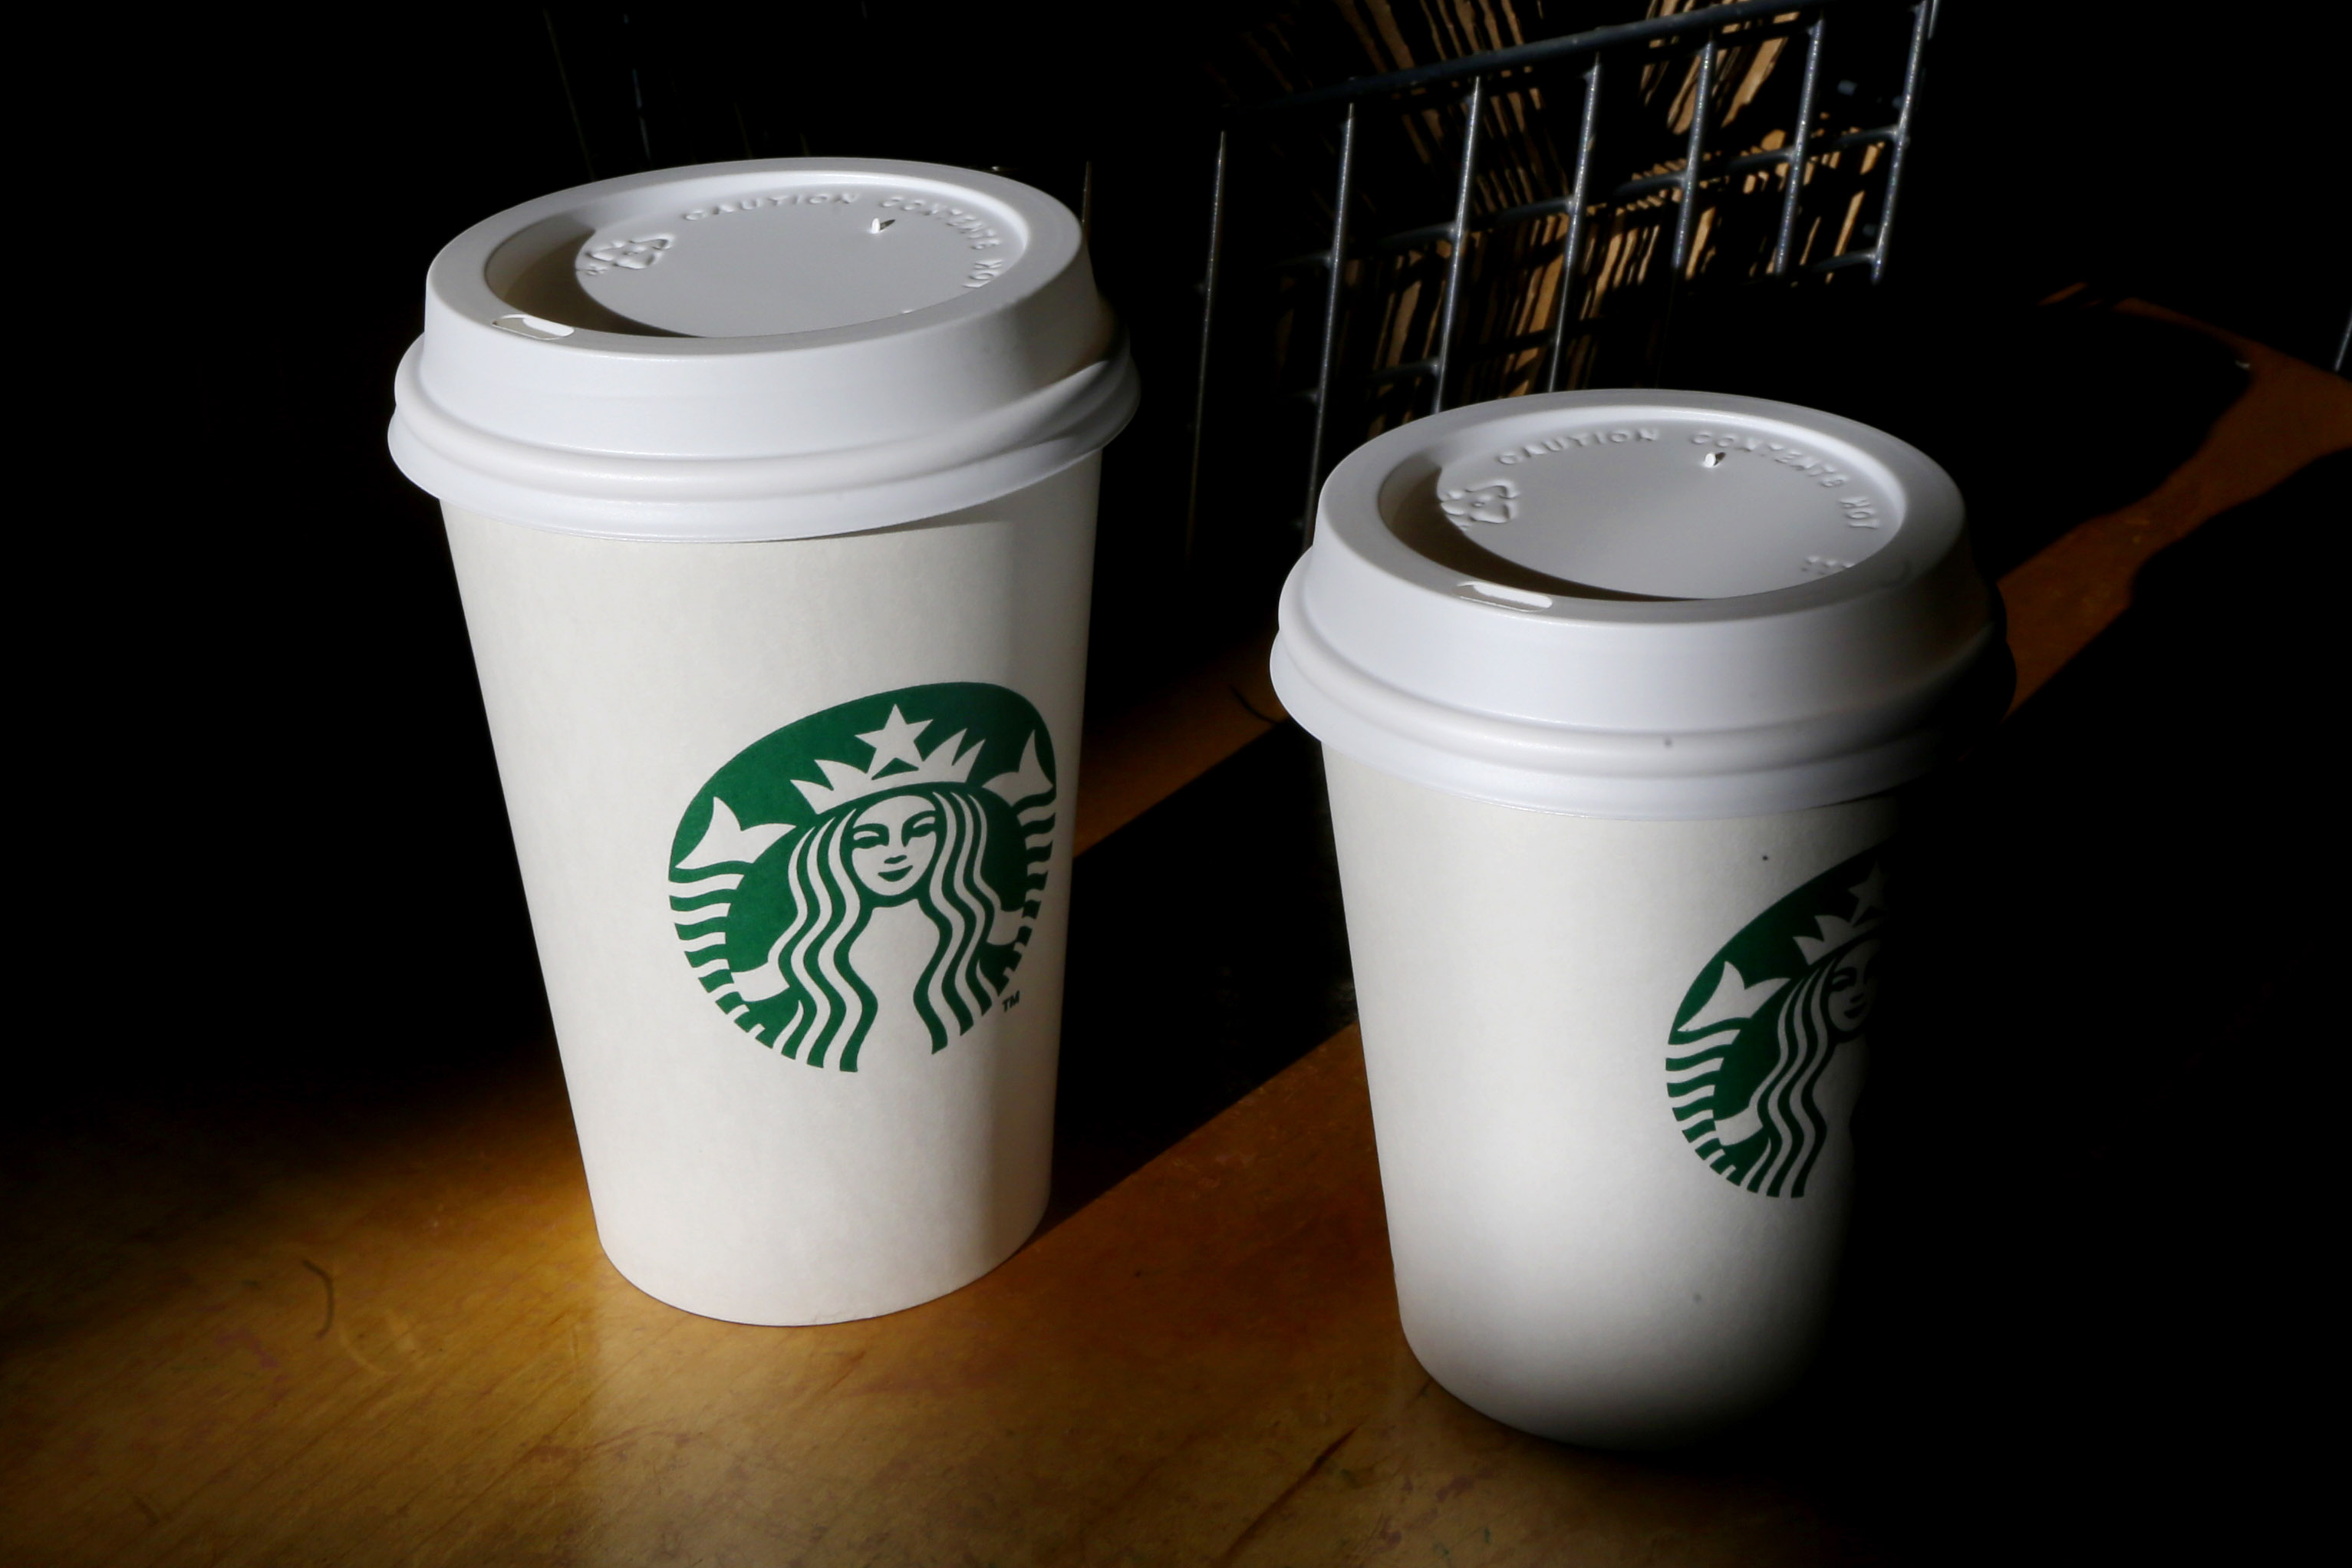 critical issues of starbucks Starbucks, battling an uproar over the arrest of two black men while they were waiting for a friend at one of the coffee chain's stores last week, said tuesday it would close more than 8,000 of.